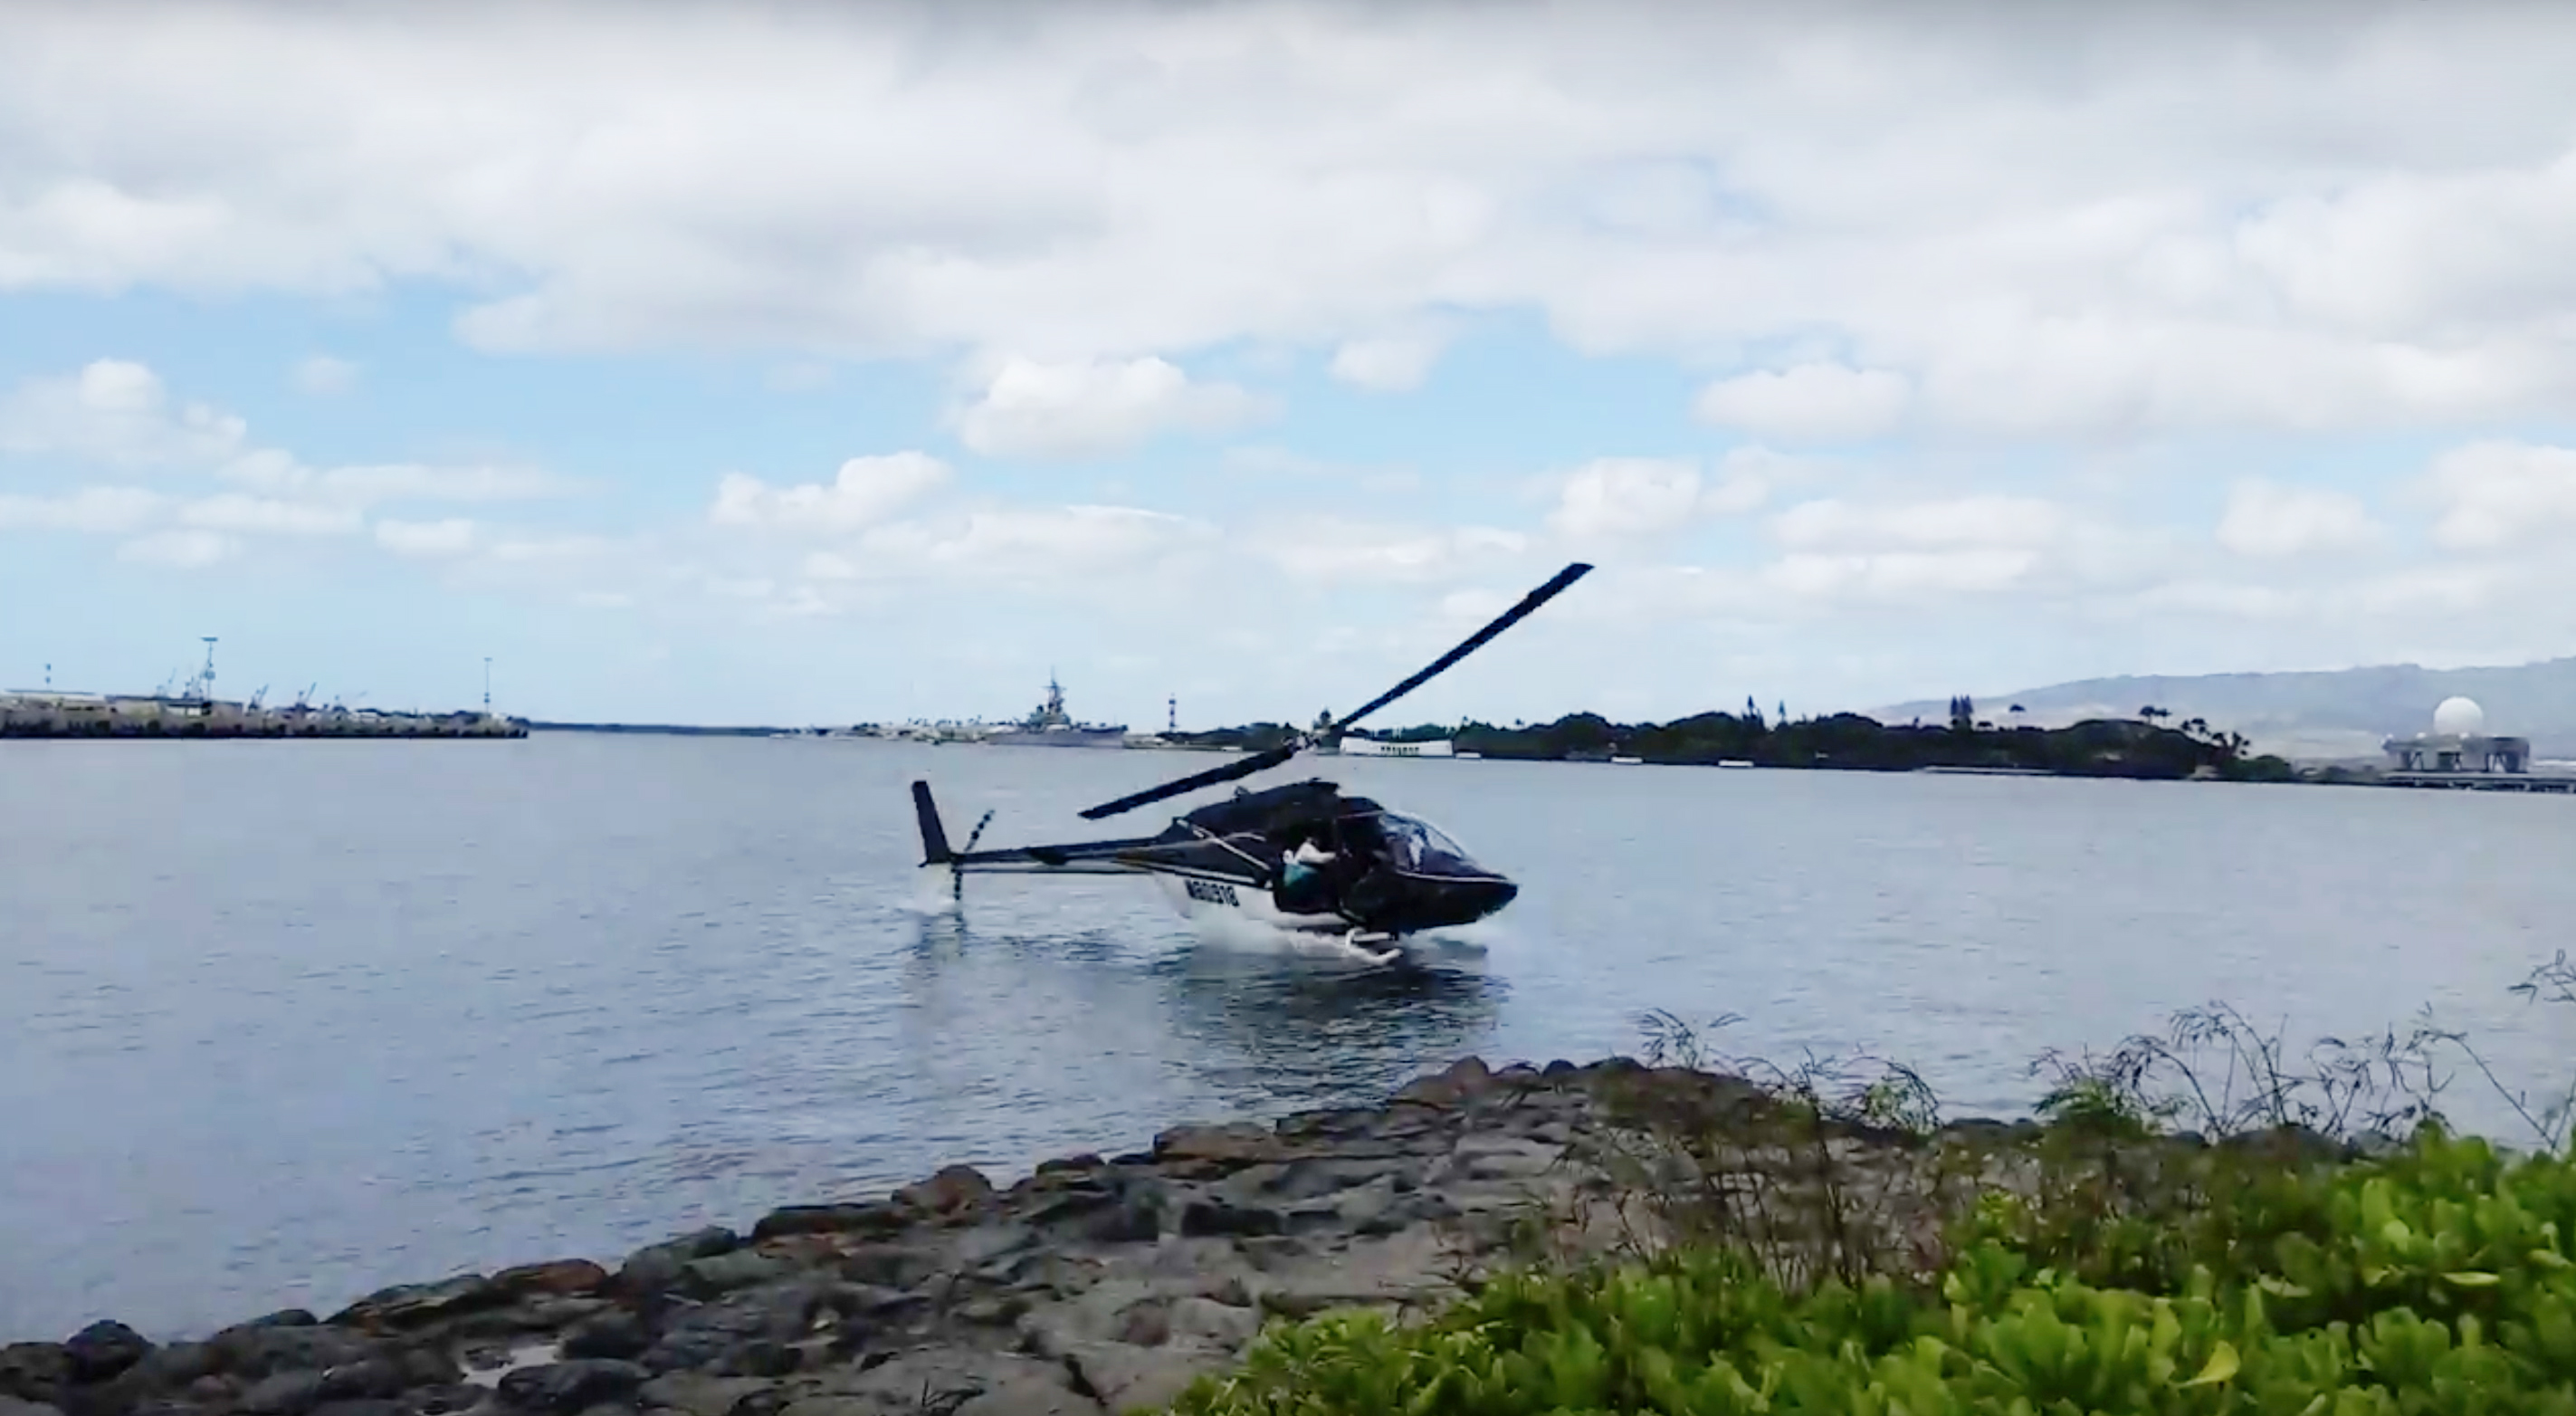 In this image taken from video provided by Shawn Winrich, a helicopter crashes near Parl Harbor, Hawaii, Feb. 18, 2016